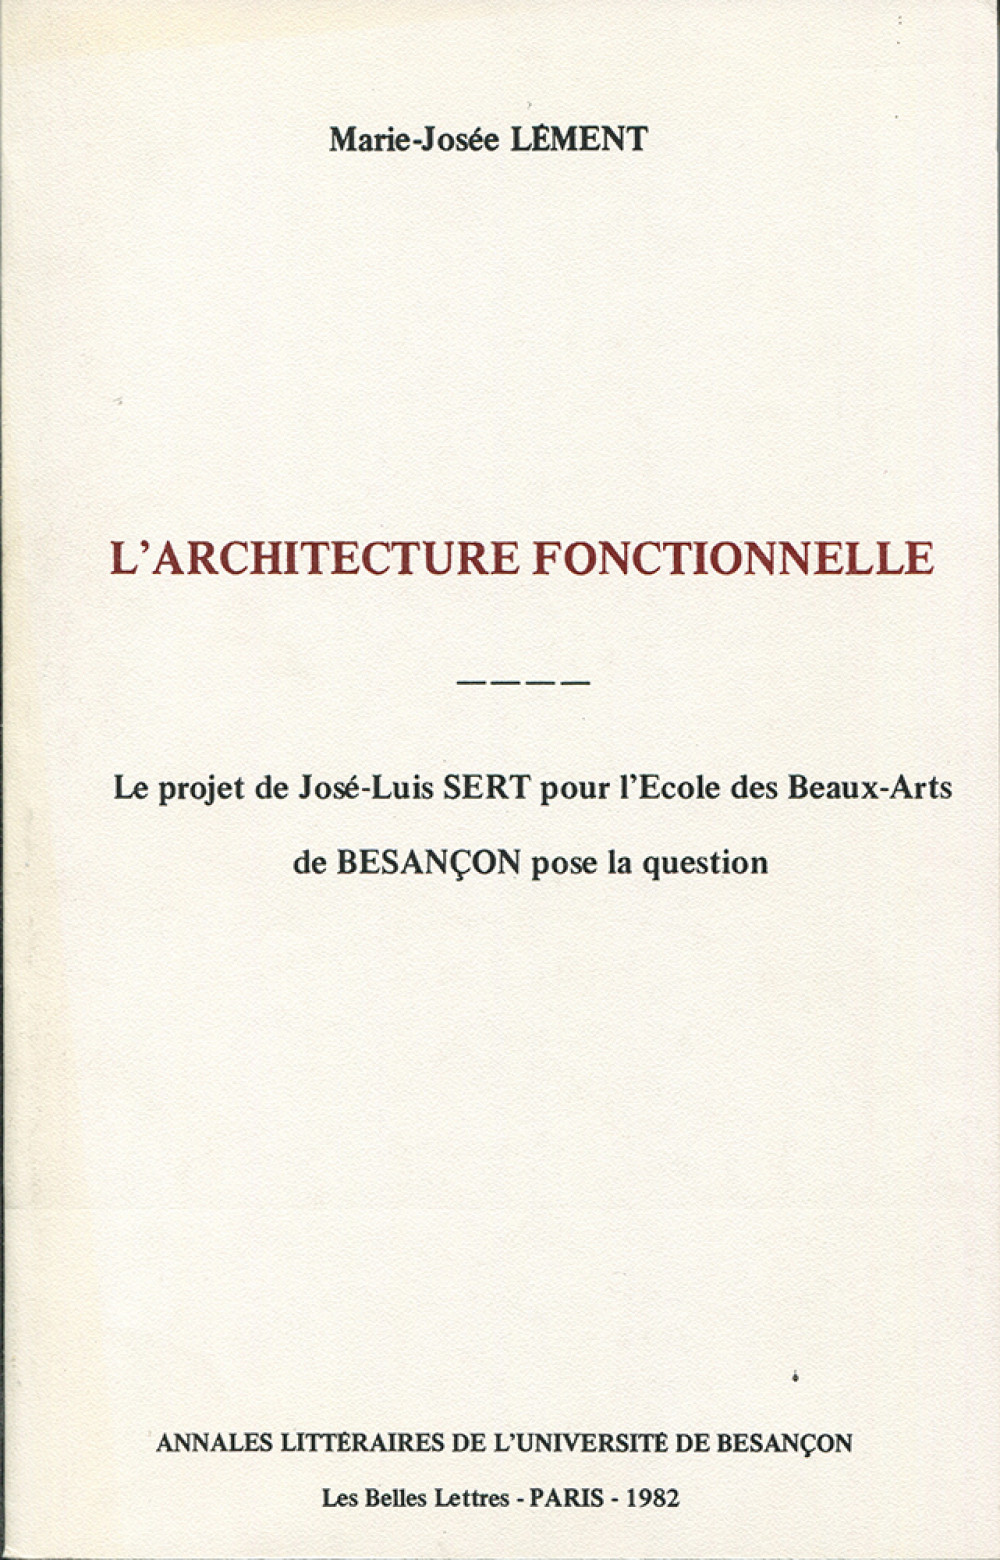 L'architecture fonctionnelle